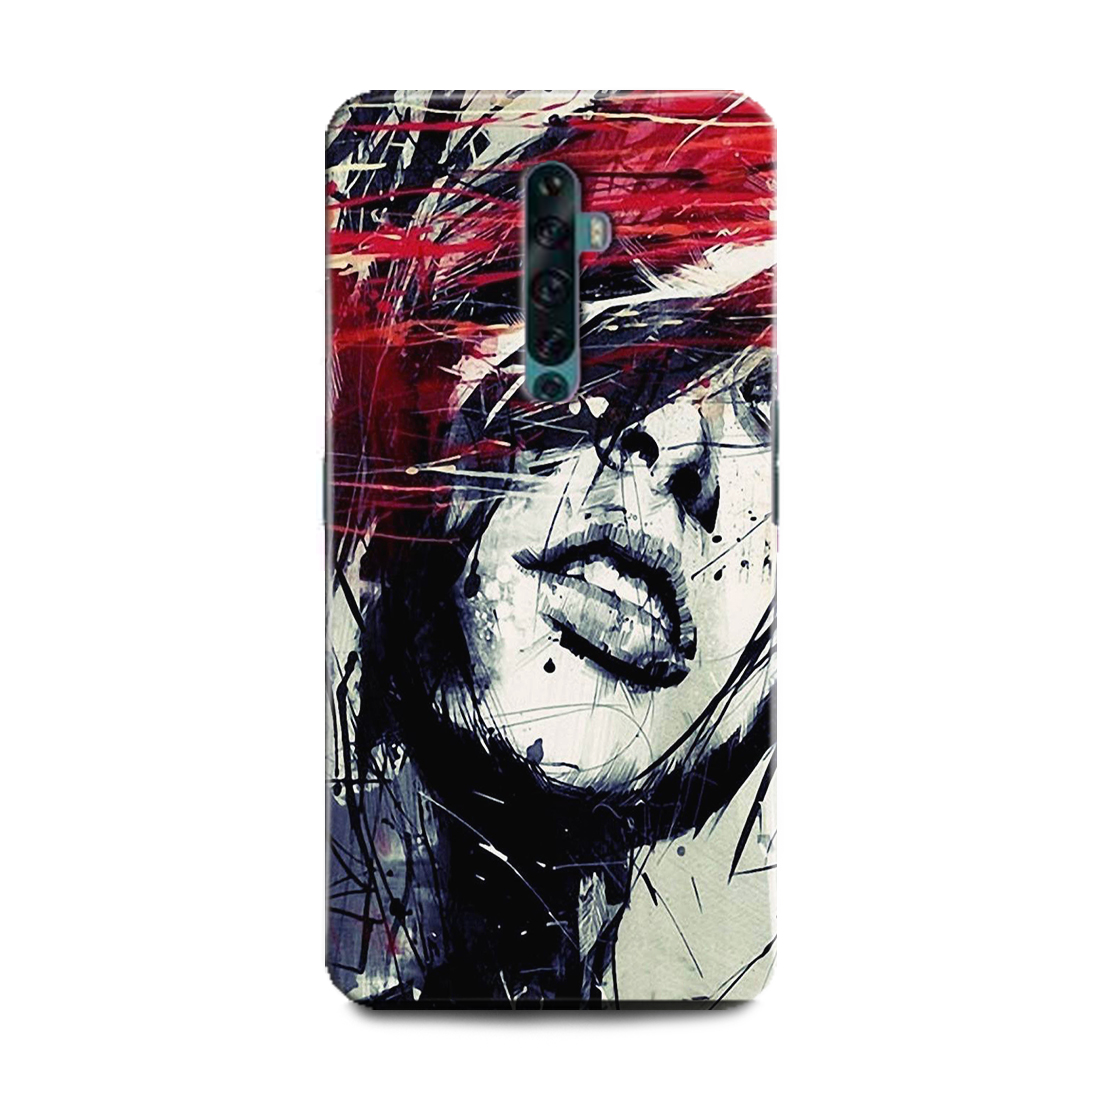 INDICRAFT Mobile Back Cover For Oppo A9 2020 / CPH1937 Hard Case (God of War, Game, Xbox, Playstation, Kartos) (AB-OppoA92020-0699)